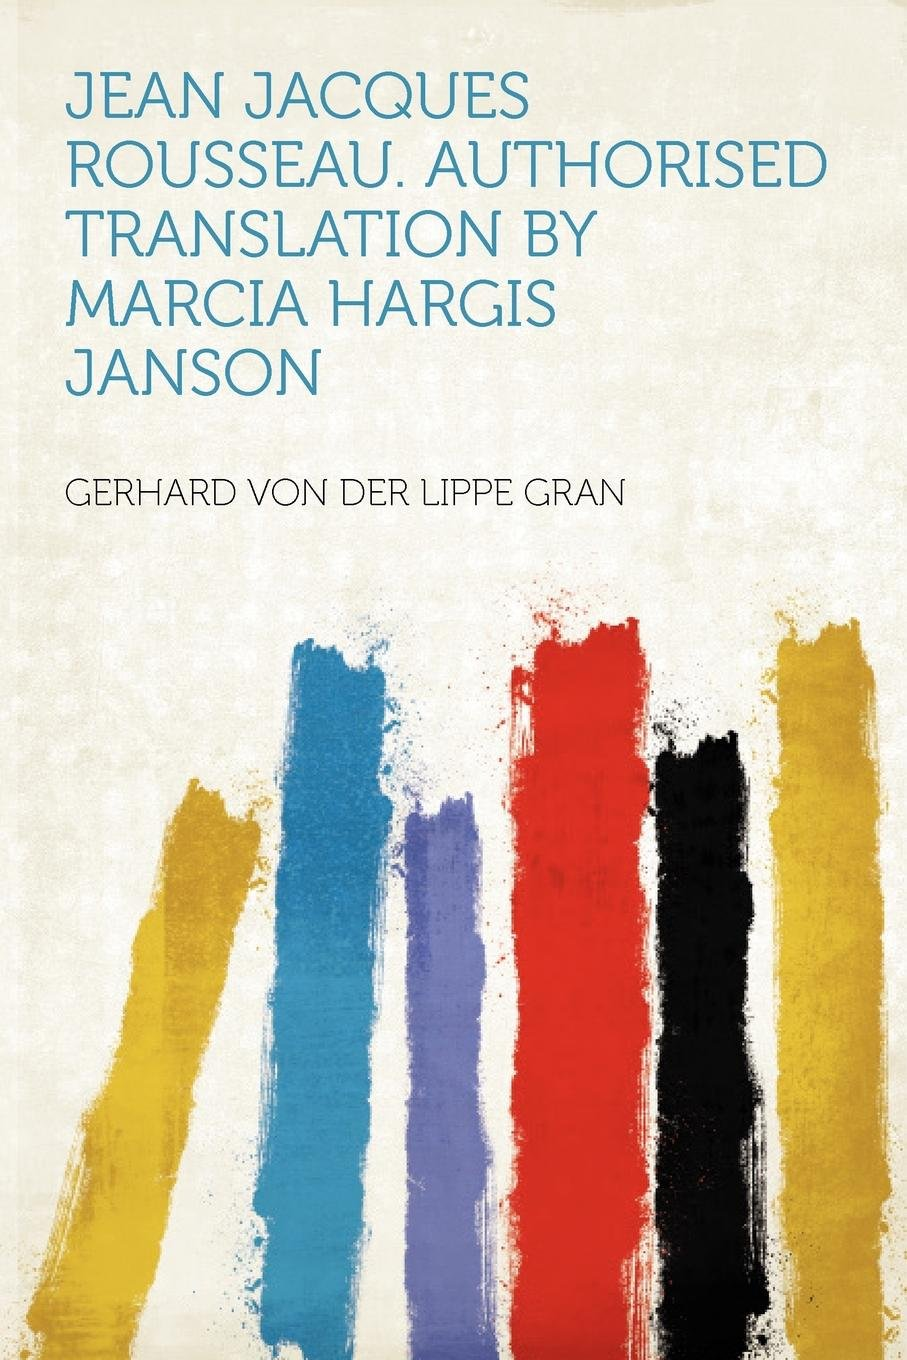 Authorised Translation by Marcia Hargis Janson Book Online at Low Prices in  India | Jean Jacques Rousseau. Authorised Translation by Marcia Hargis  Janson ...